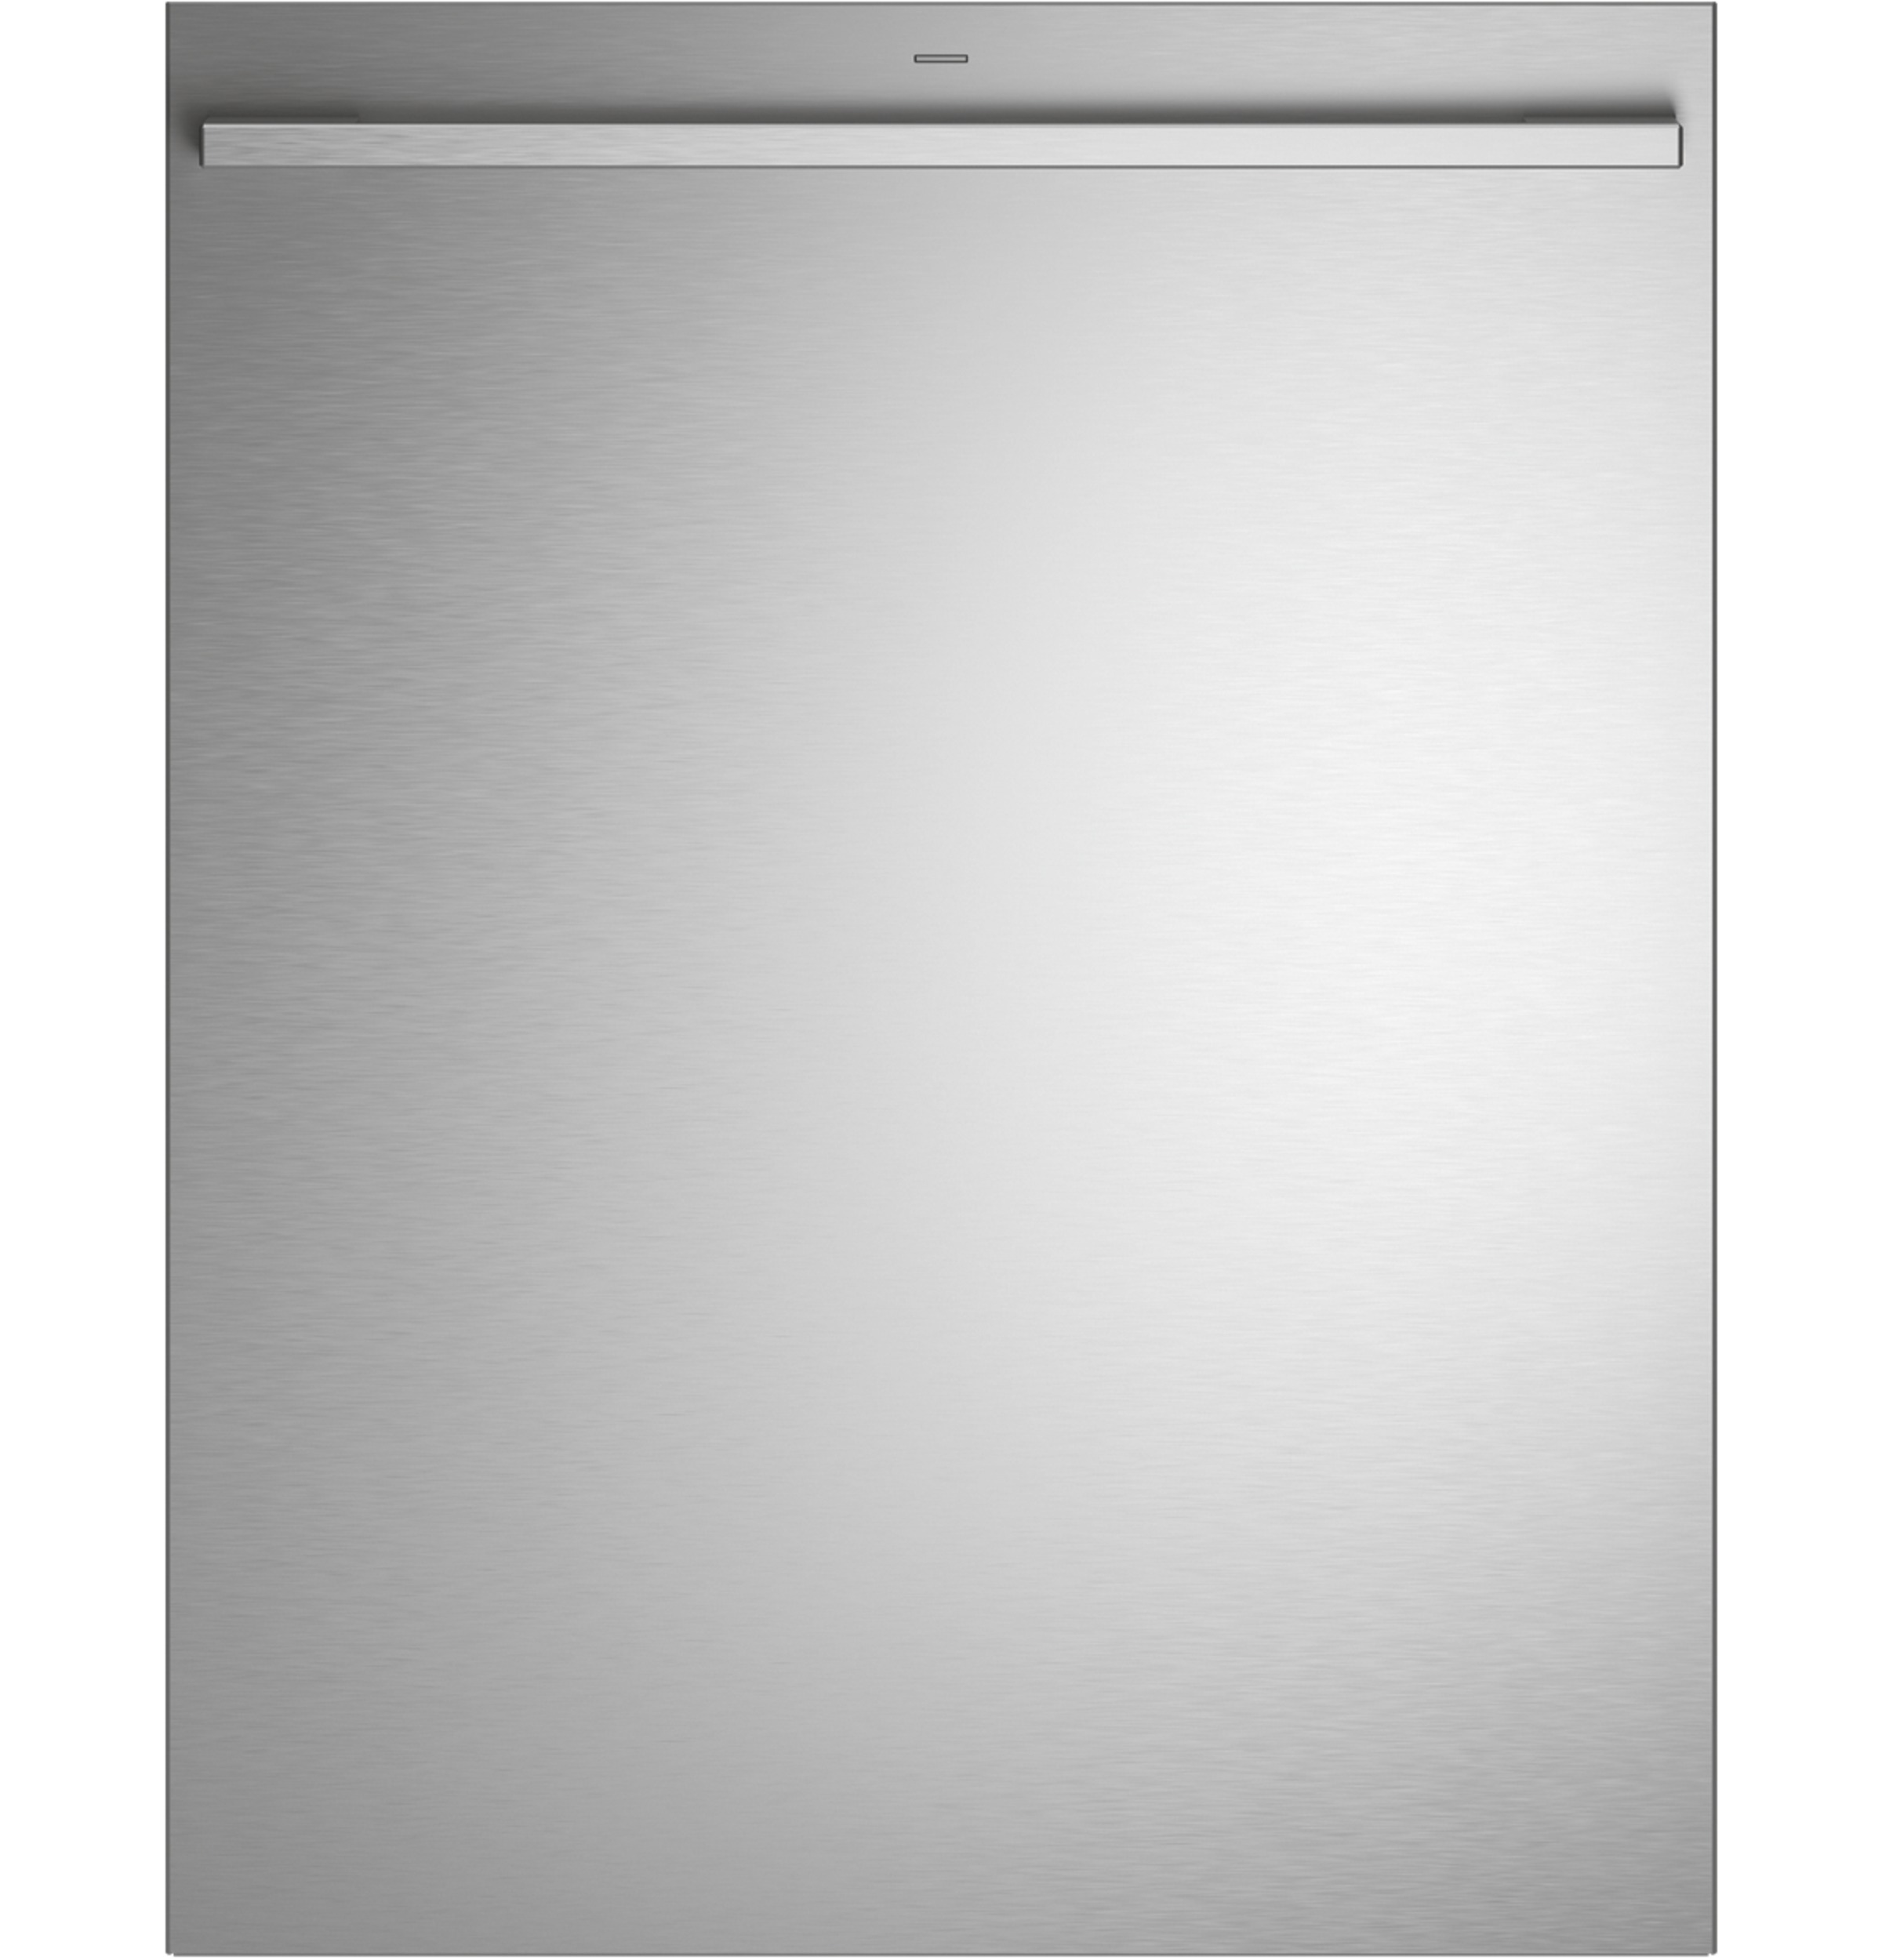 Monogram Dishwasher ZDT925SSNSS in Stainless Steel color showcased by Corbeil Electro Store